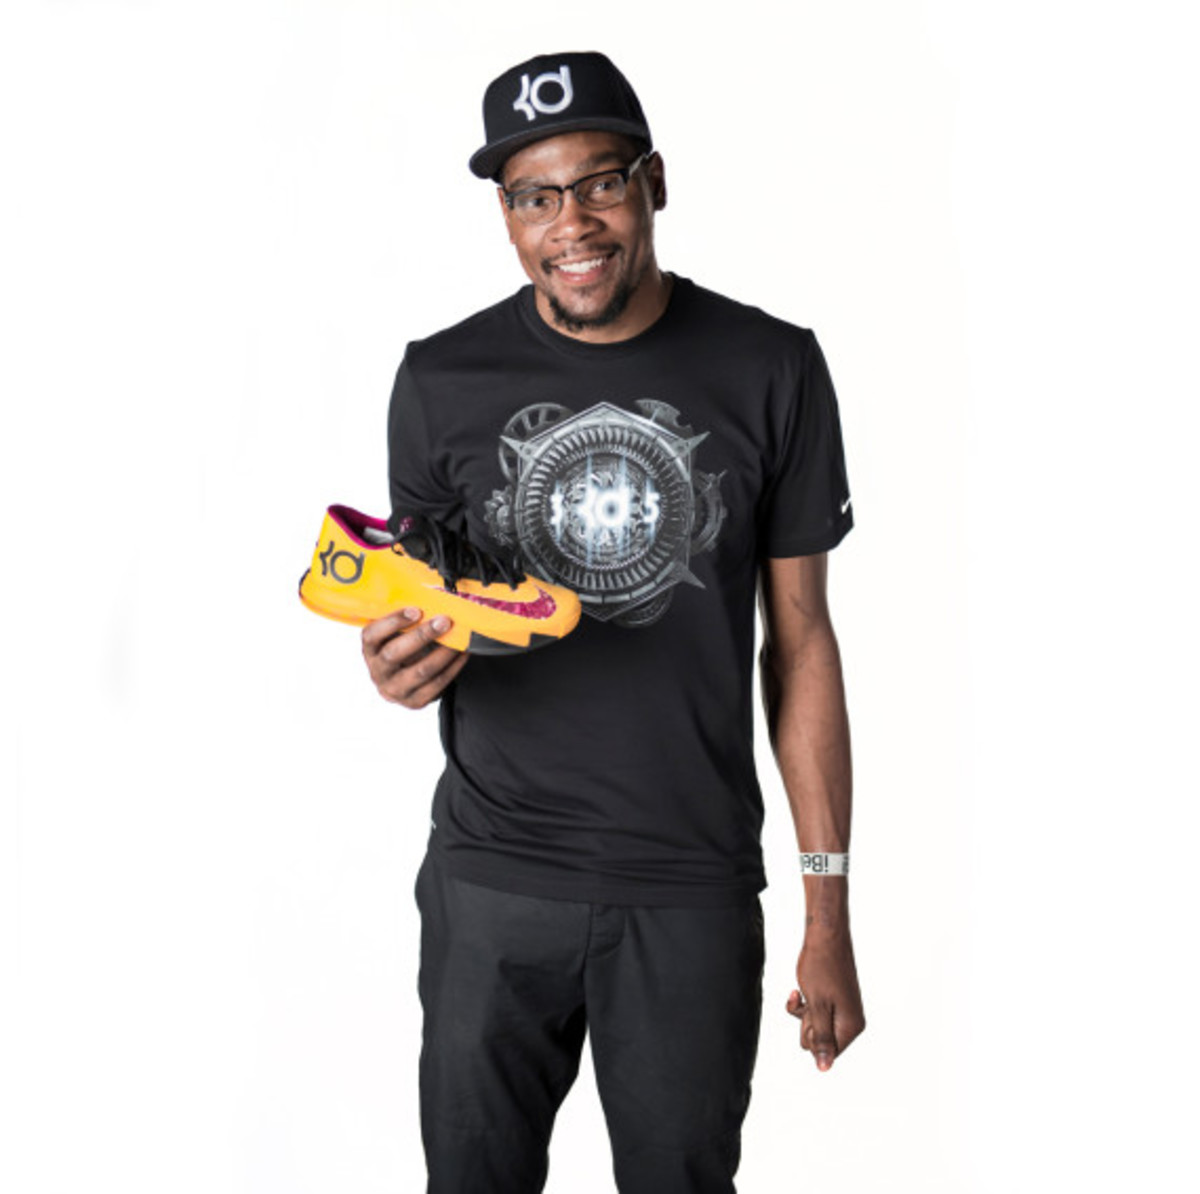 kevin-durant-on-the-nike-kd-6-peanut-butter-and-jelly-02